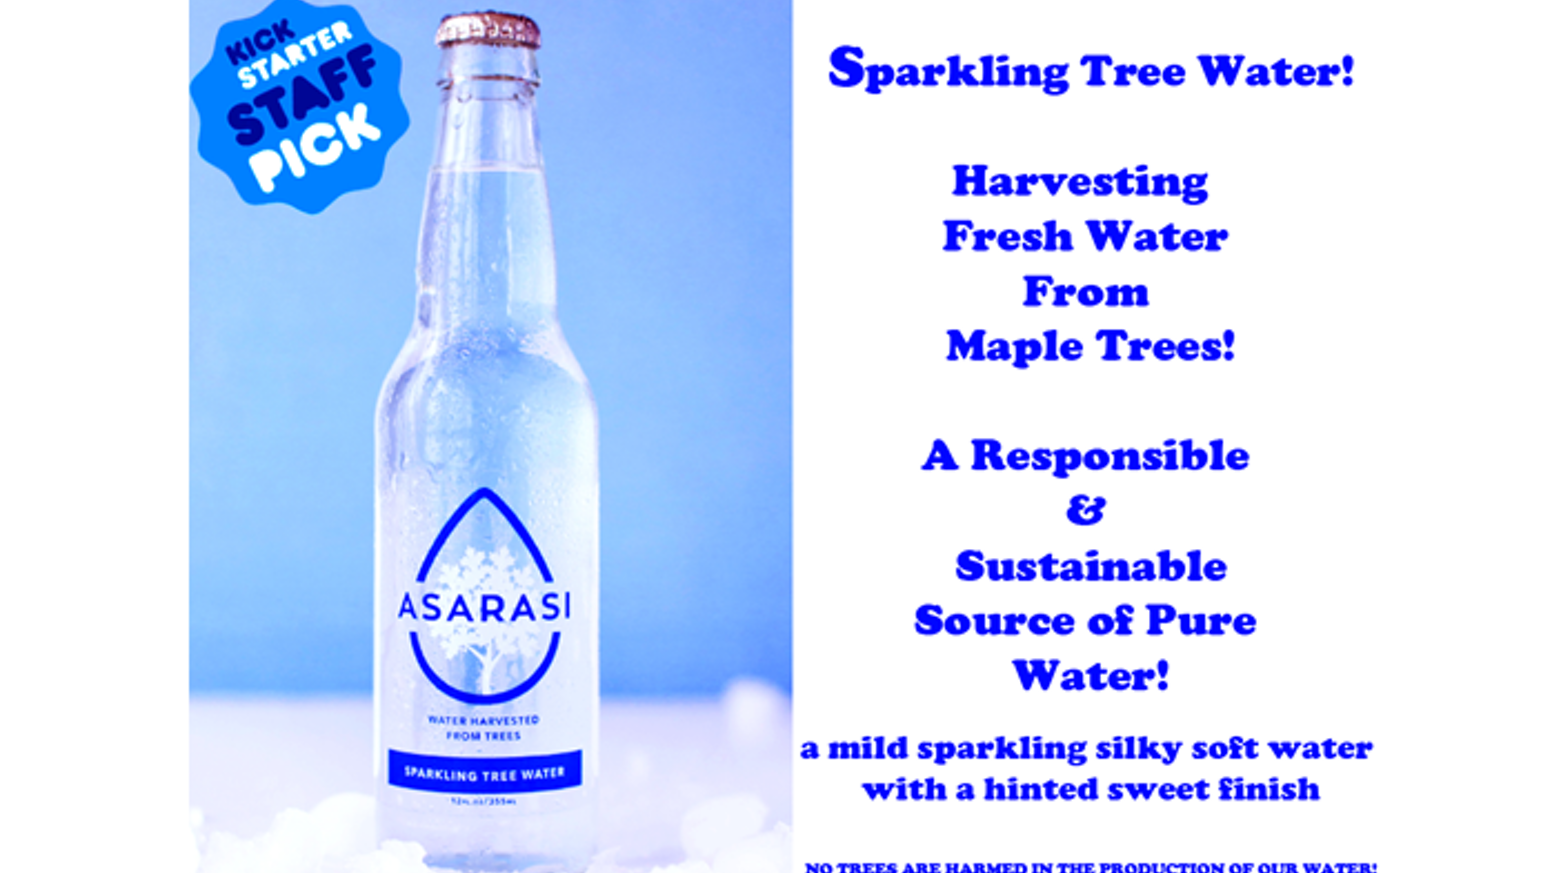 We are harvesting pure water from trees by pioneering the recovery and bottling of the most unique source of renewable water on Earth!